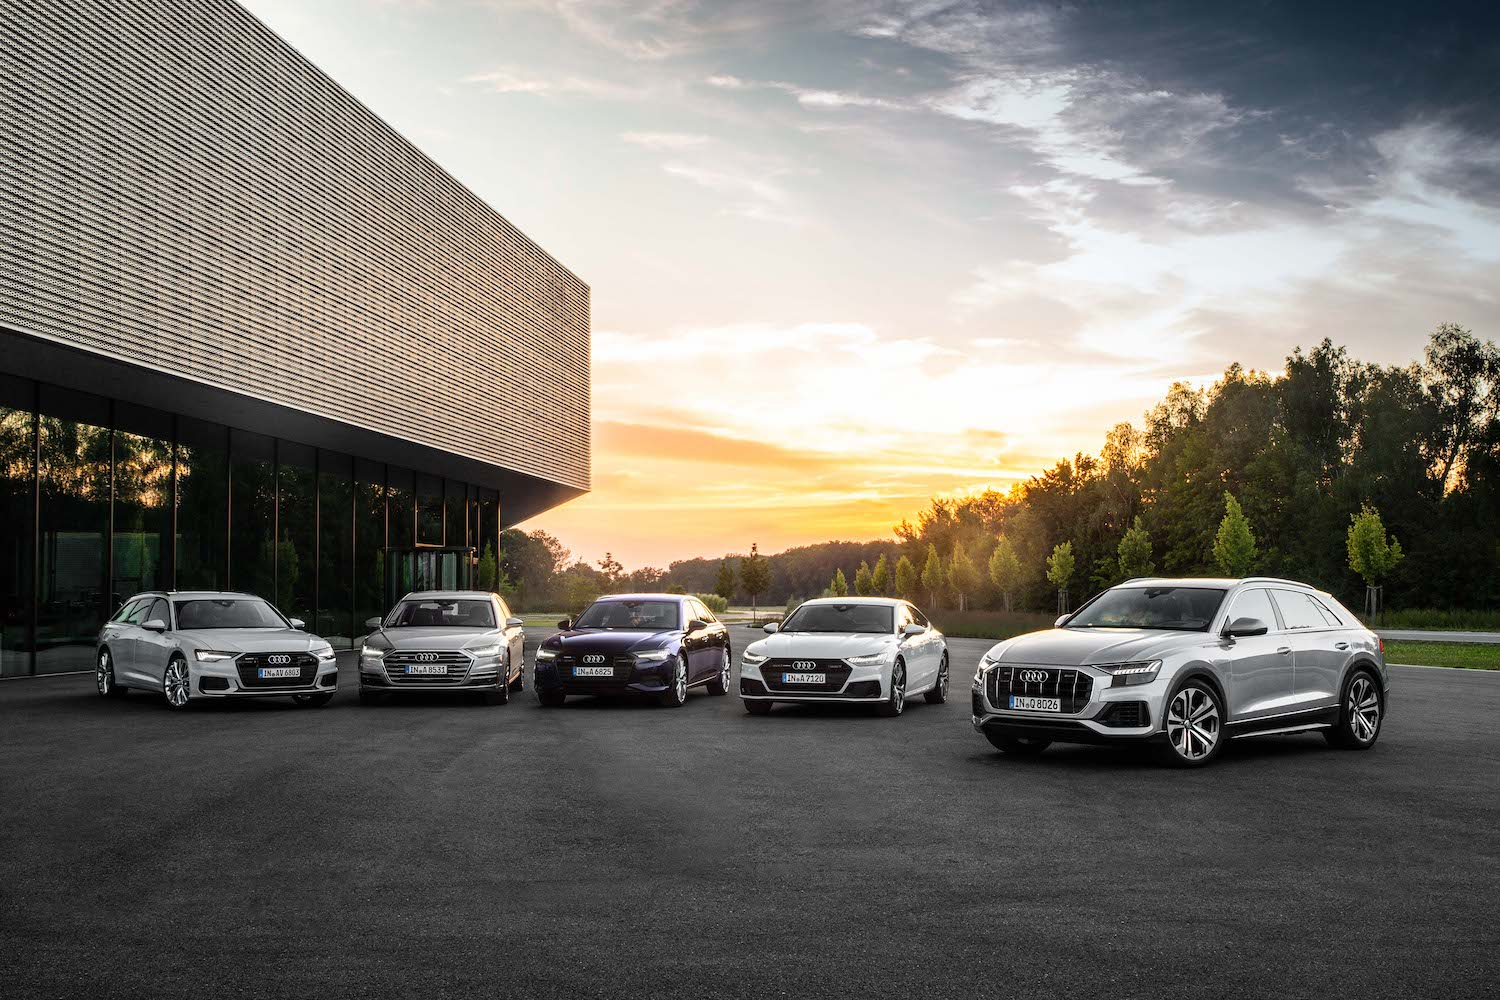 Car News | Audi Ireland 2021 'Milestone' sales event | CompleteCar.ie